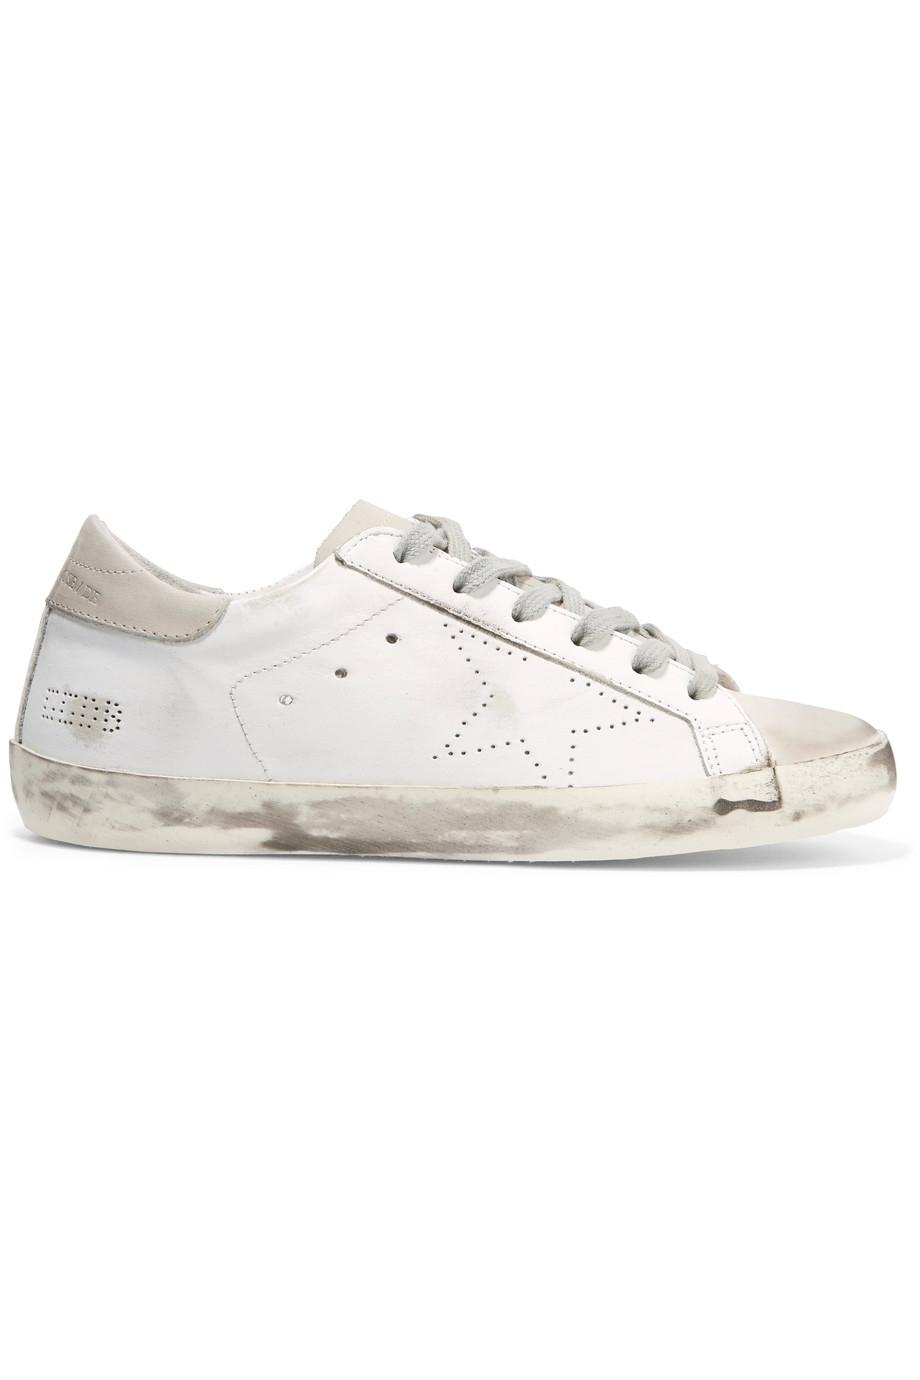 Superstar Distressed Leather And Suede Sneakers - WhiteGolden Goose NiHpVX